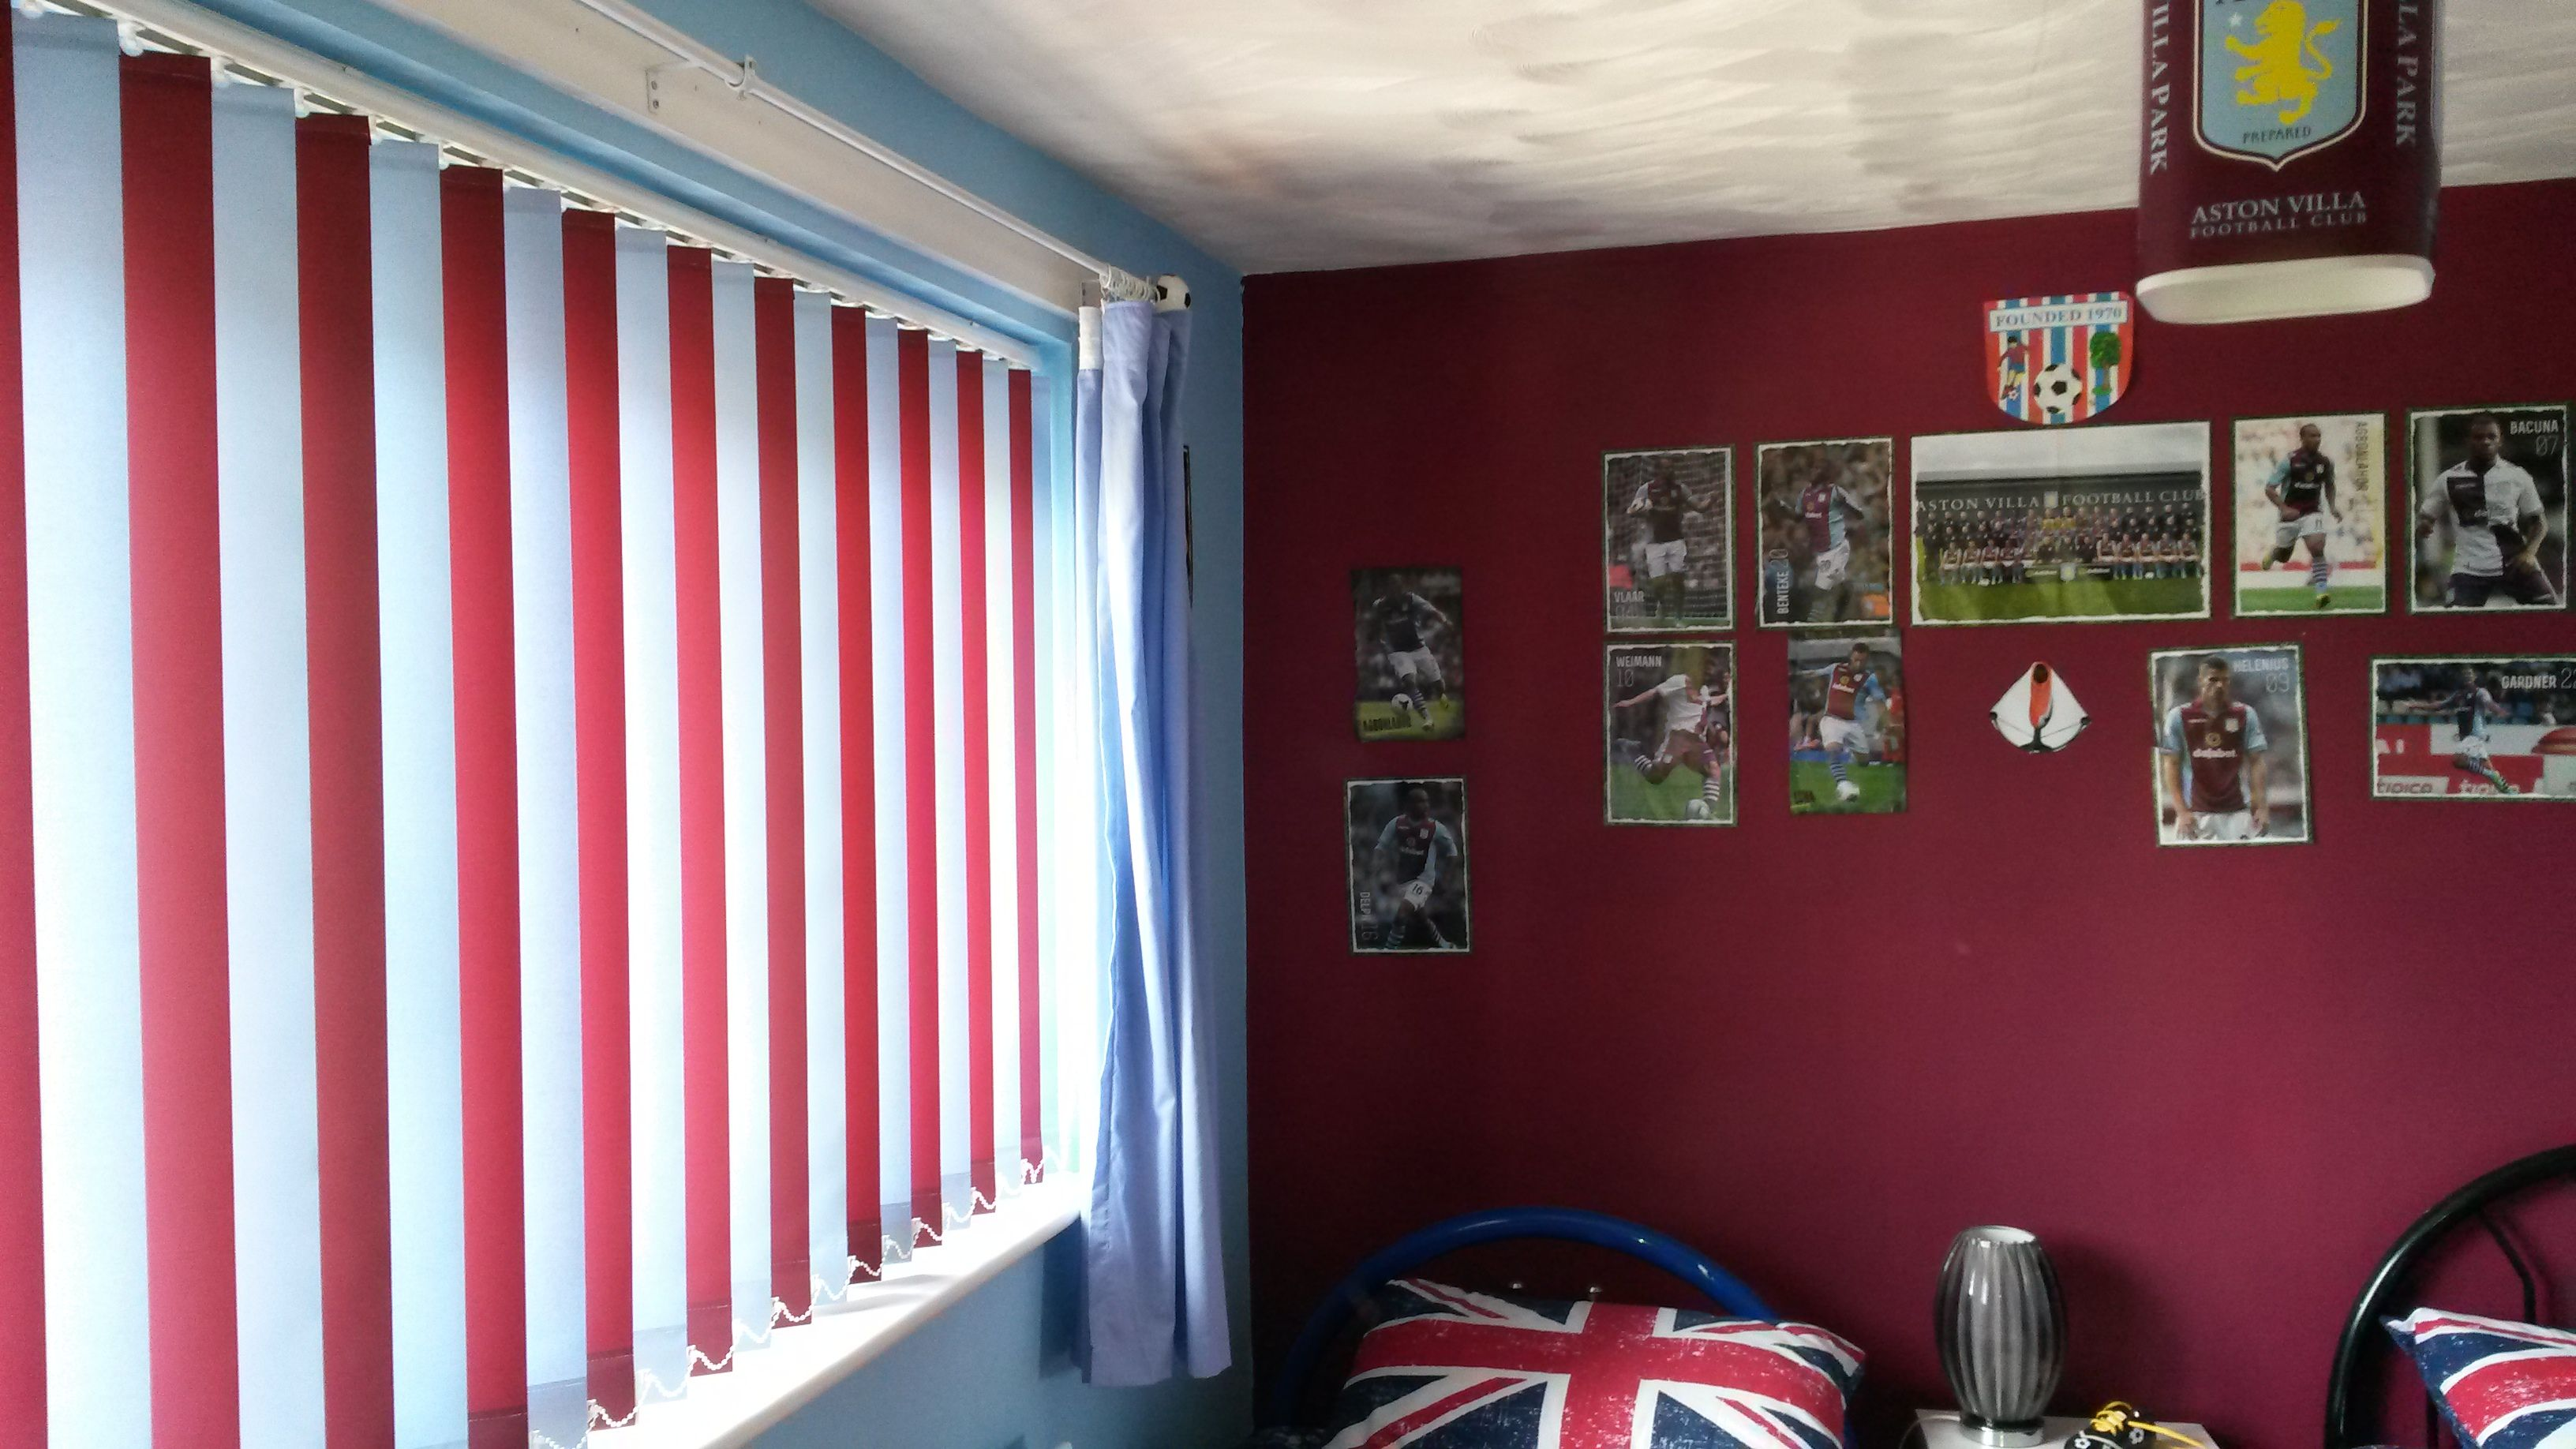 Kids Bedroom Blinds multi coloured, vertical blinds, football, aston villa. kids